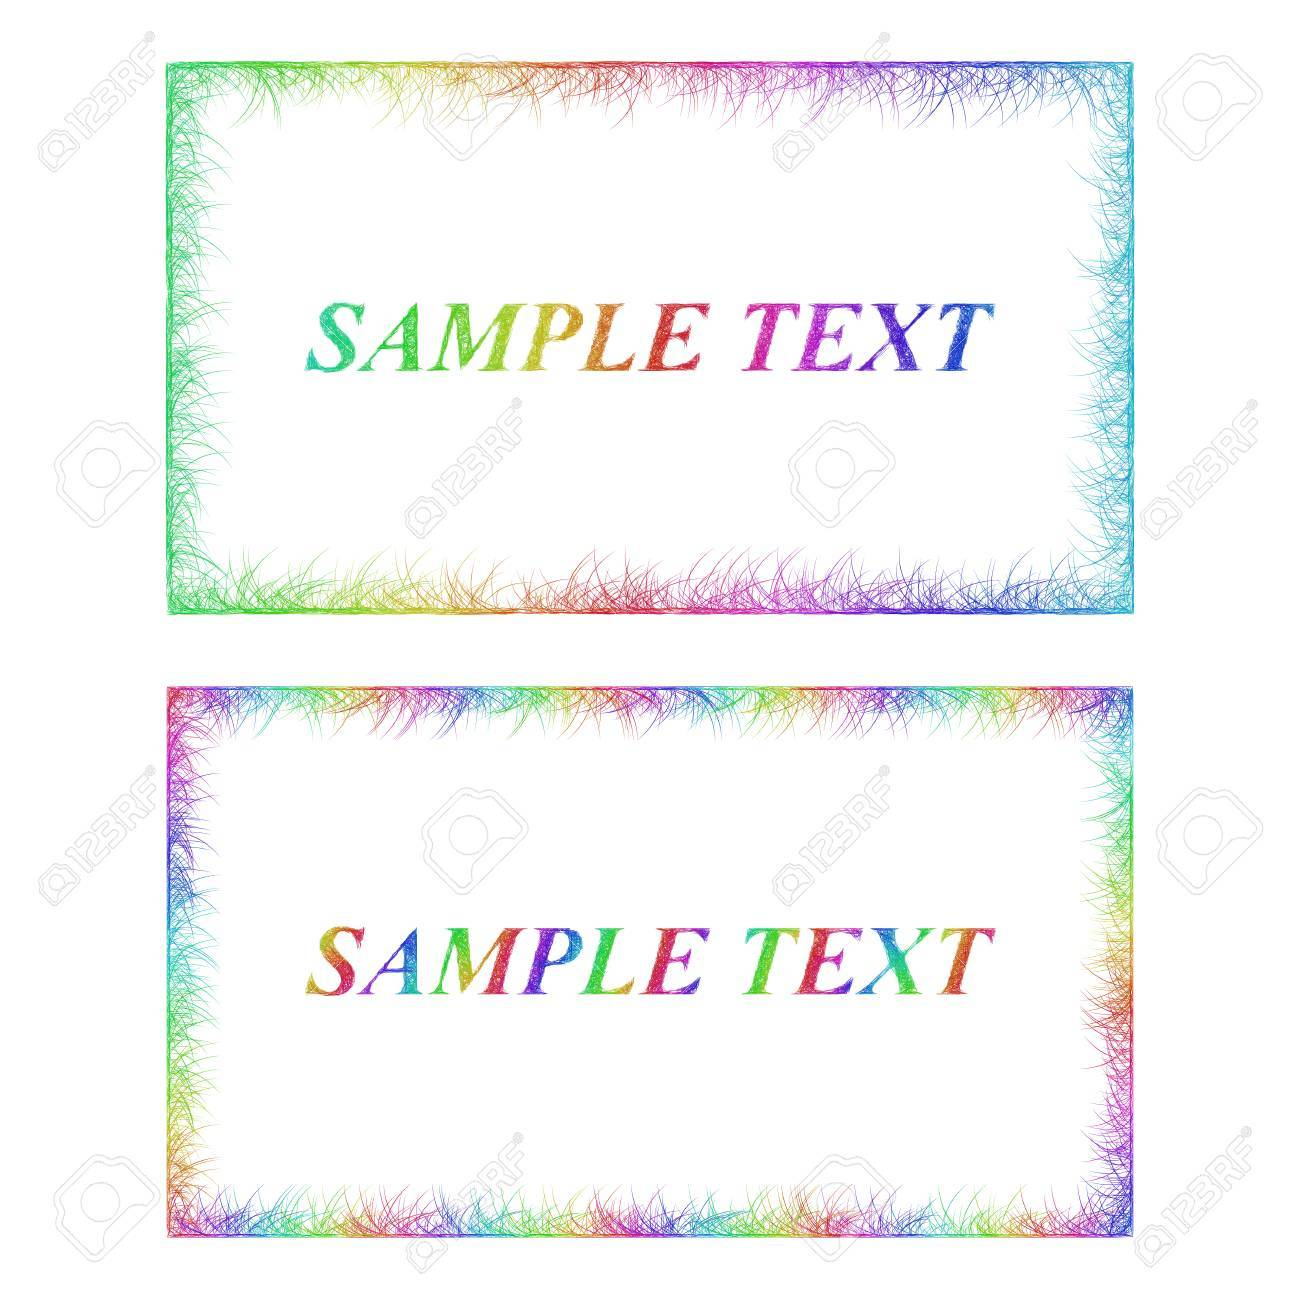 Sketch business card border templates in happy rainbow colors sketch business card border templates in happy rainbow colors stock vector 65526138 reheart Choice Image